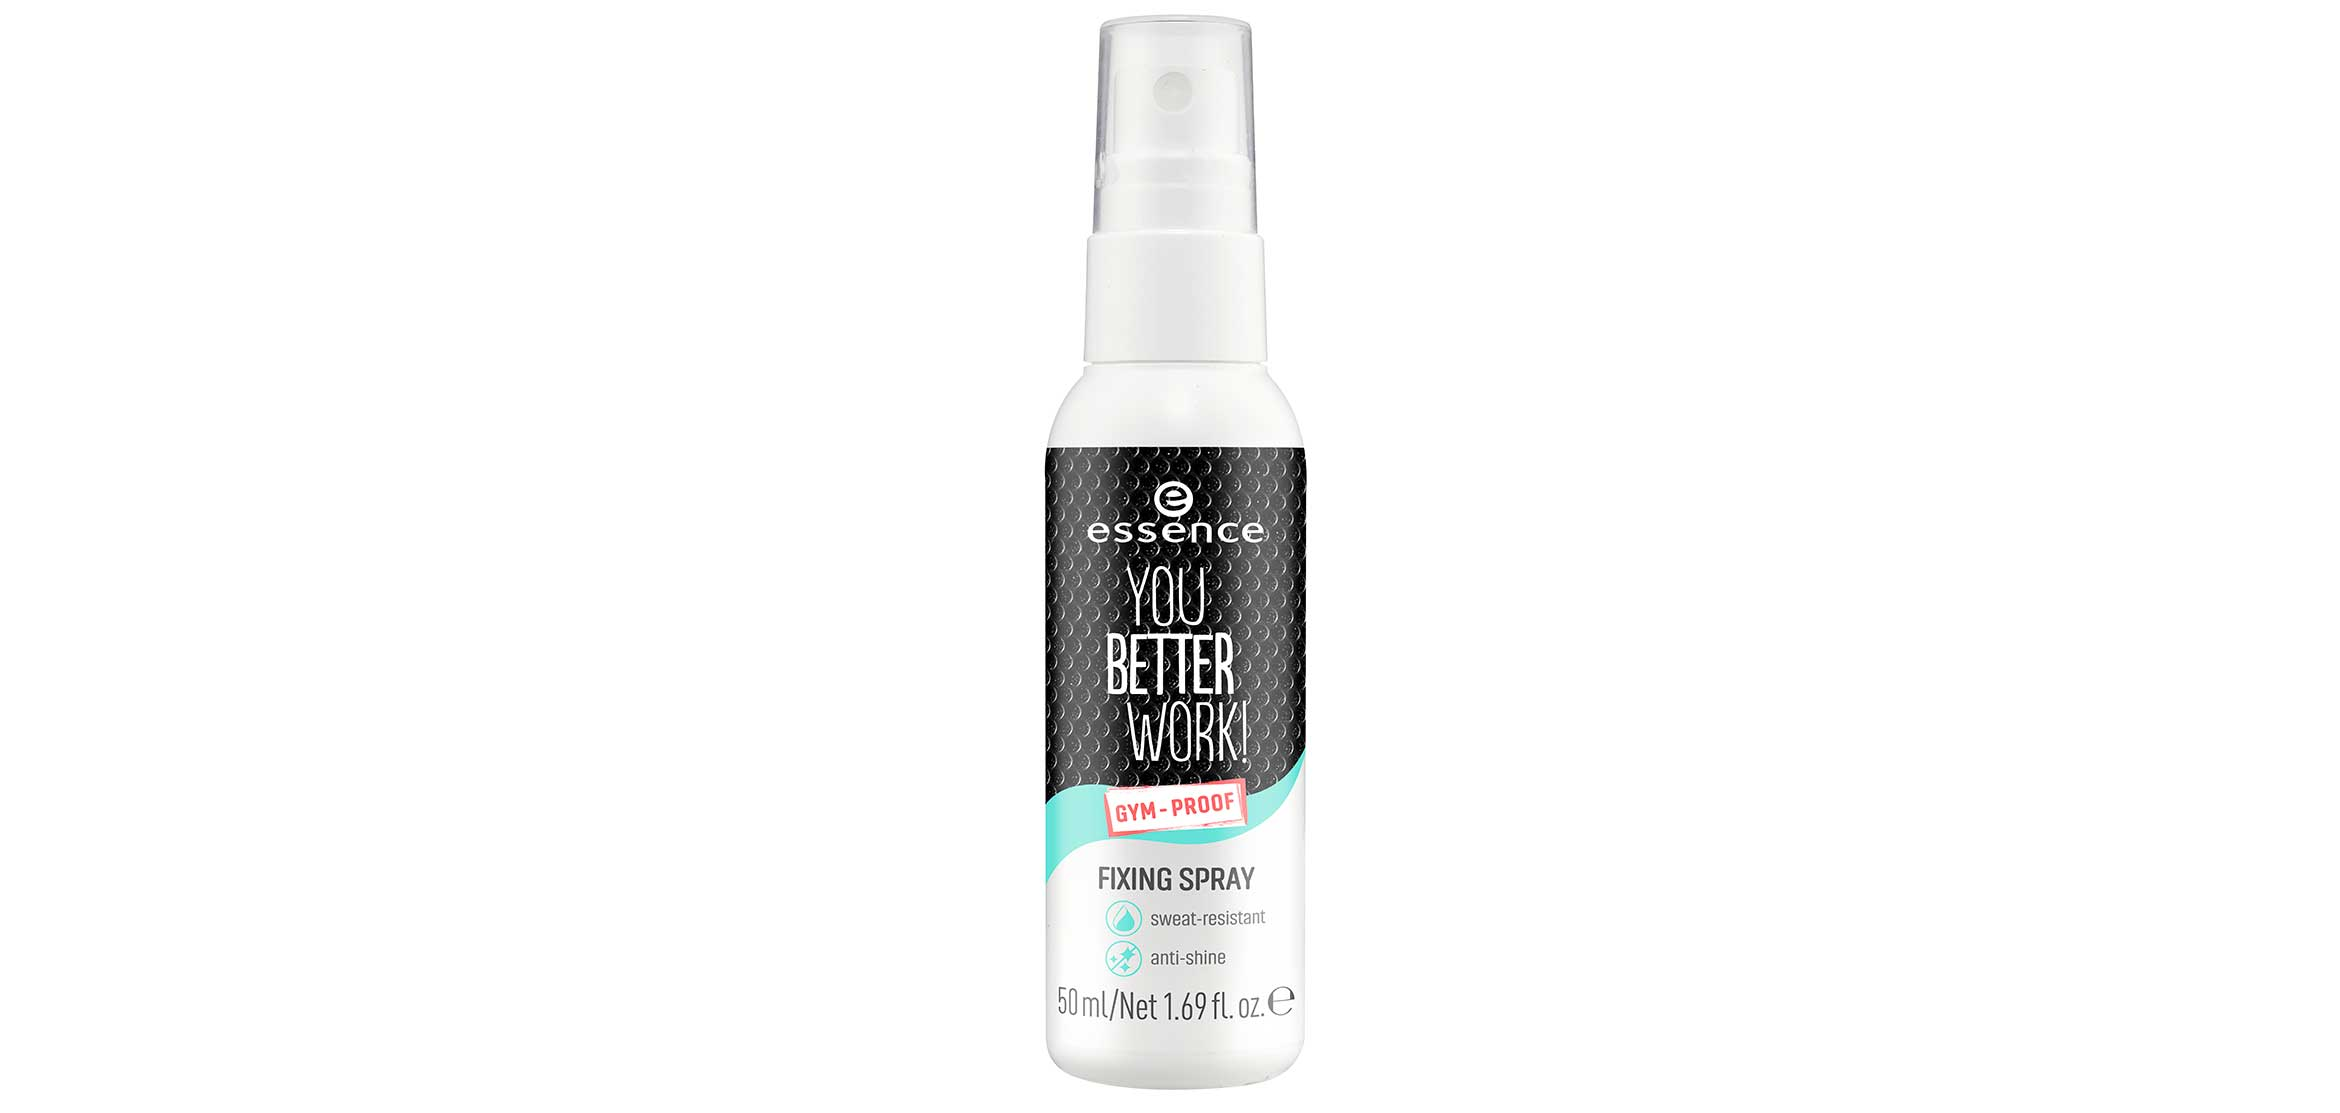 essence-you-better-work-fixing-spray-collectie-2019